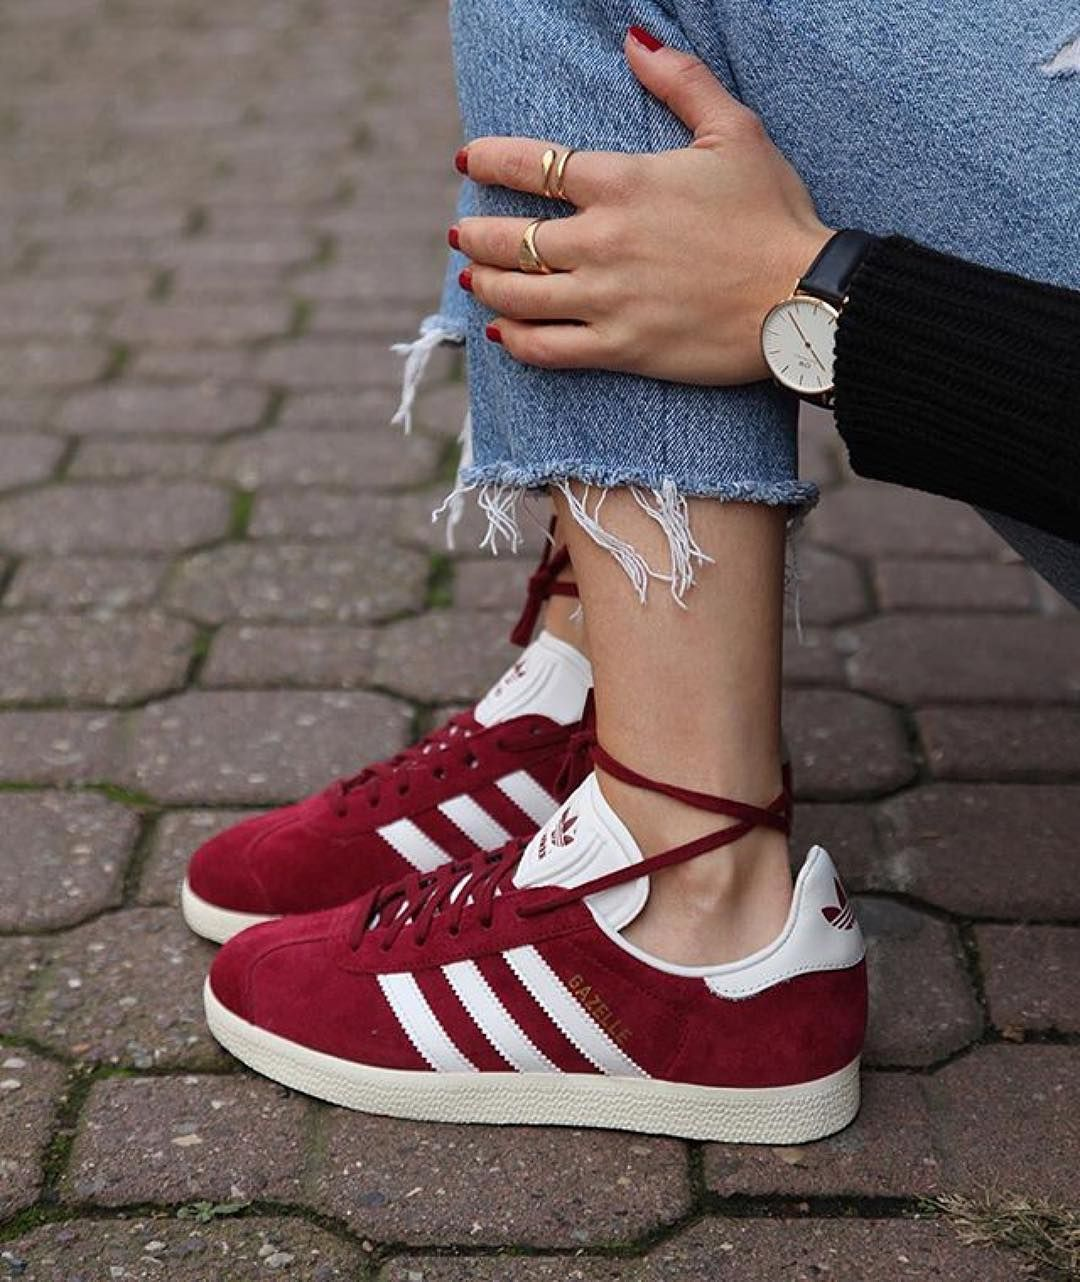 Sneakers women - Adidas Gazelle burgundy (©officineconcept ...